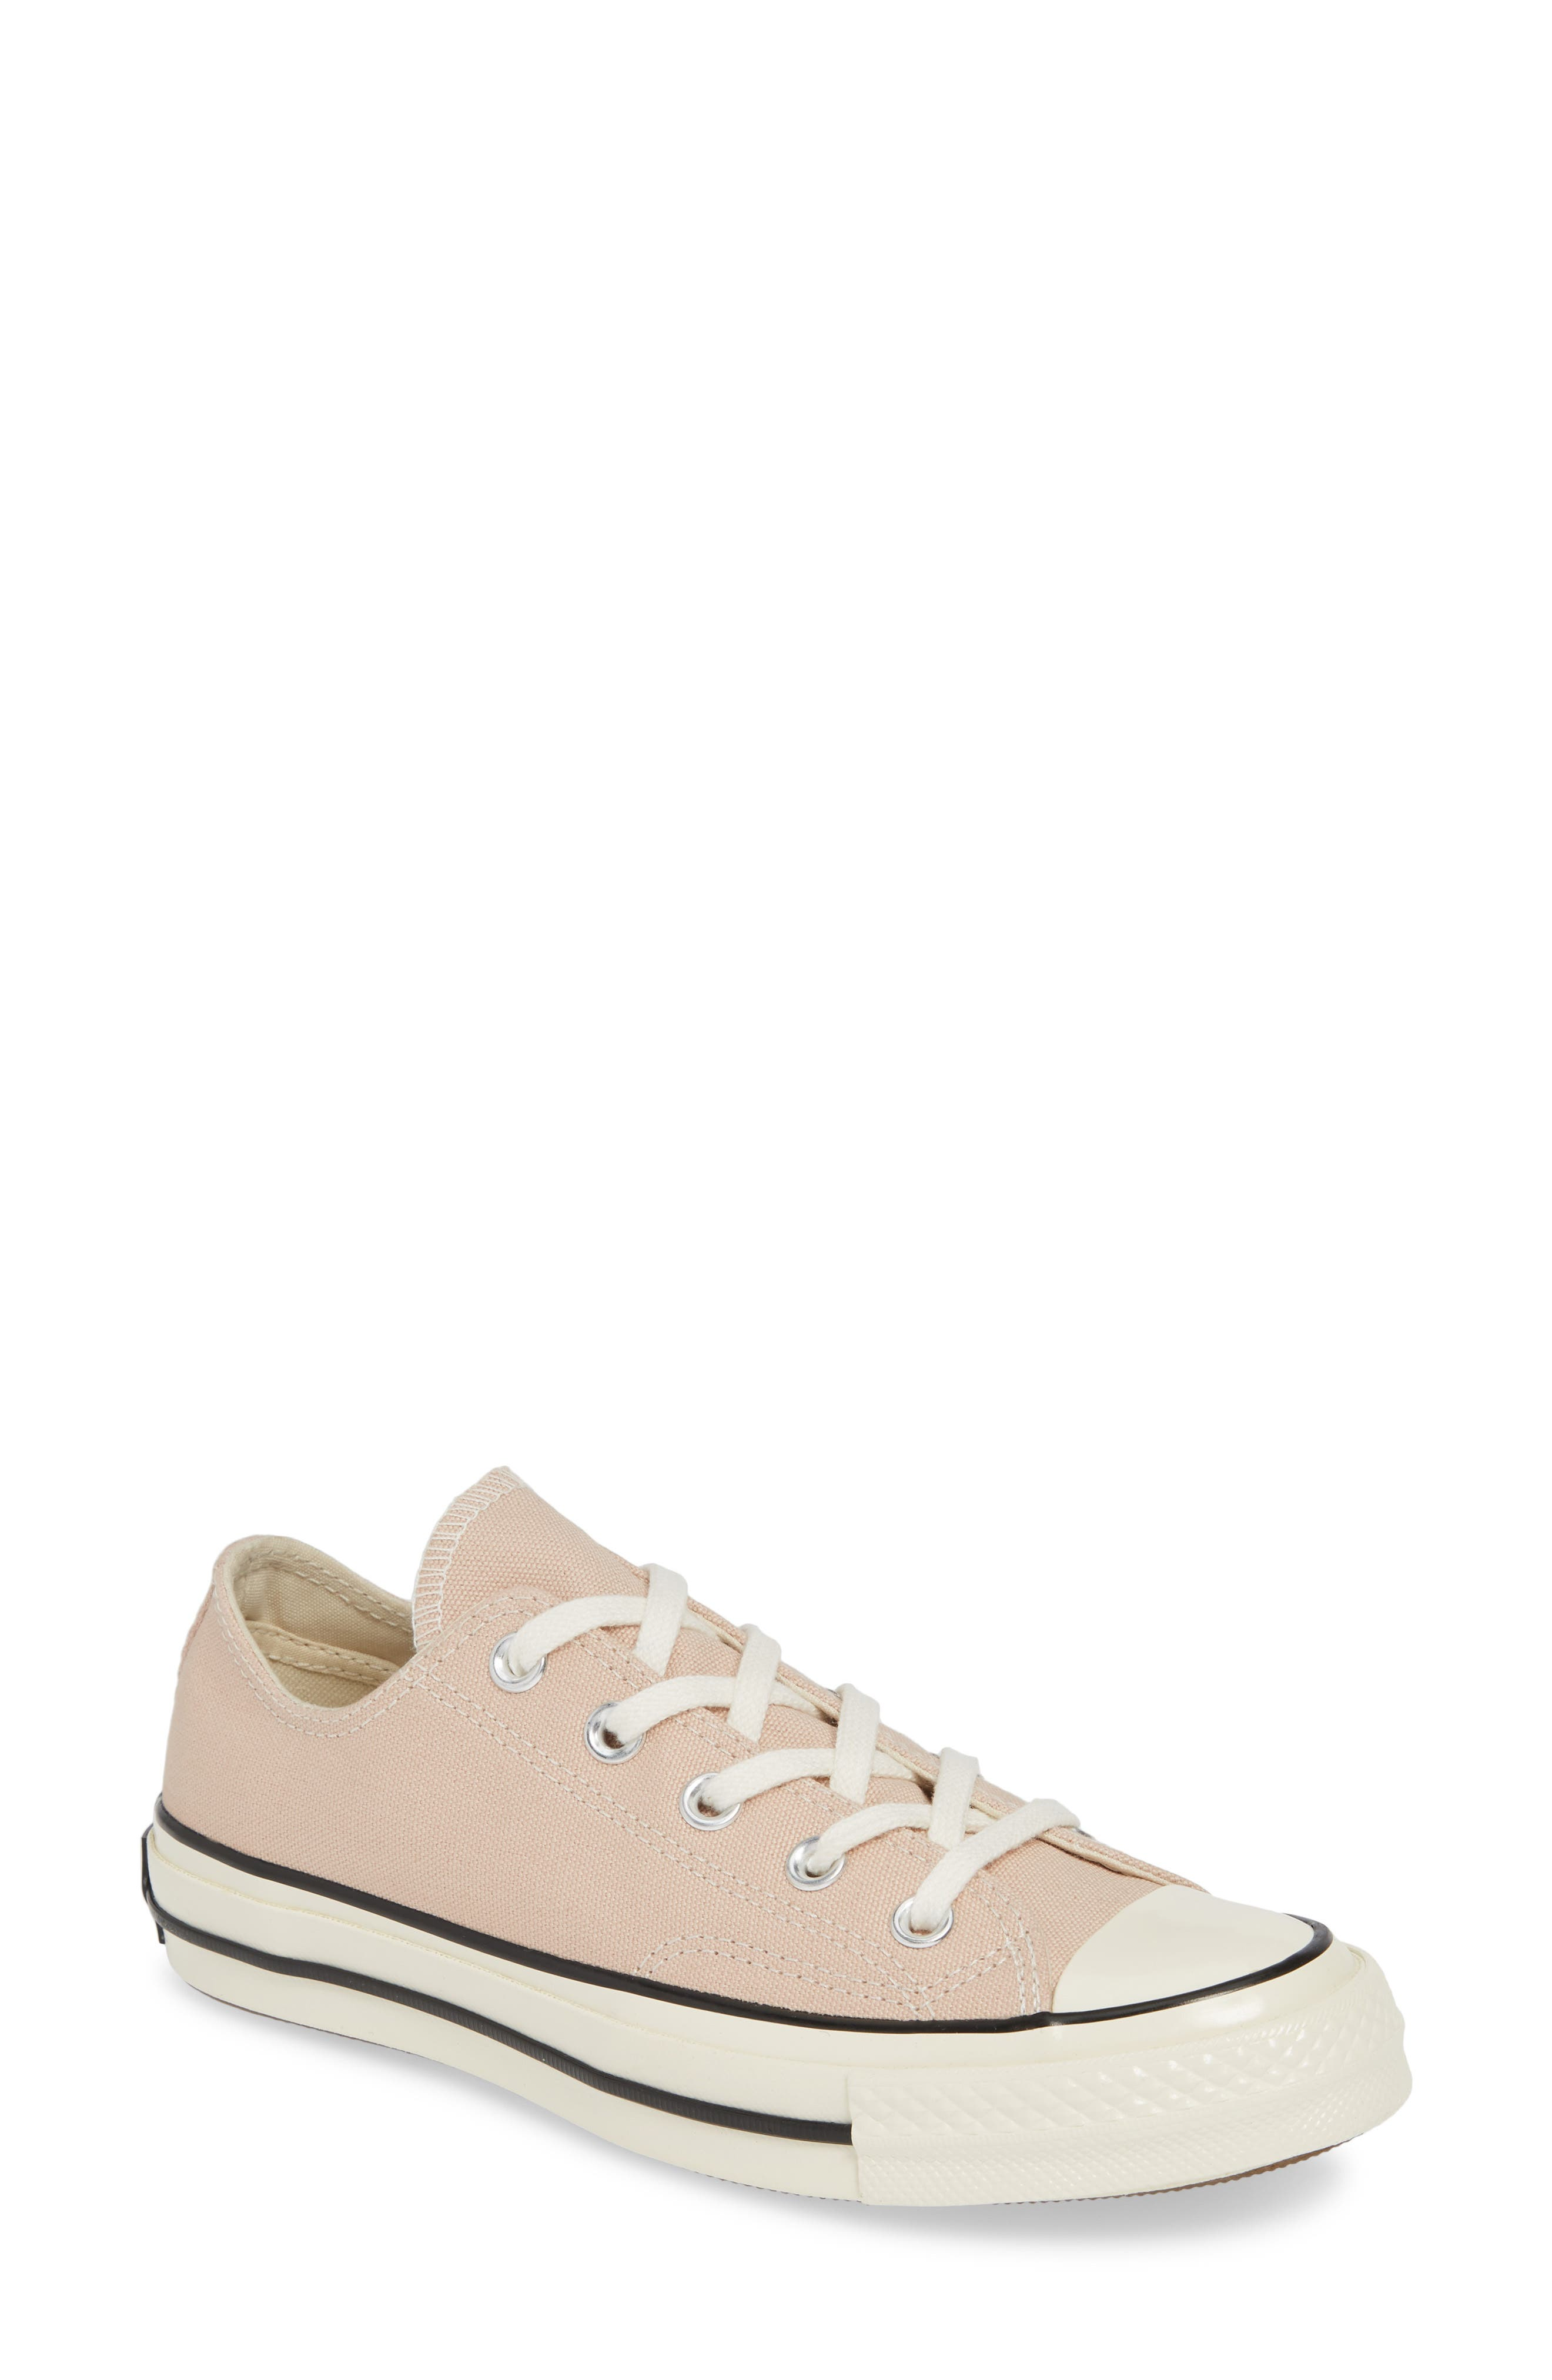 CONVERSE, Chuck Taylor<sup>®</sup> All Star<sup>®</sup> Chuck 70 Ox Sneaker, Main thumbnail 1, color, PARTICLE BEIGE/ BLACK/ EGRET